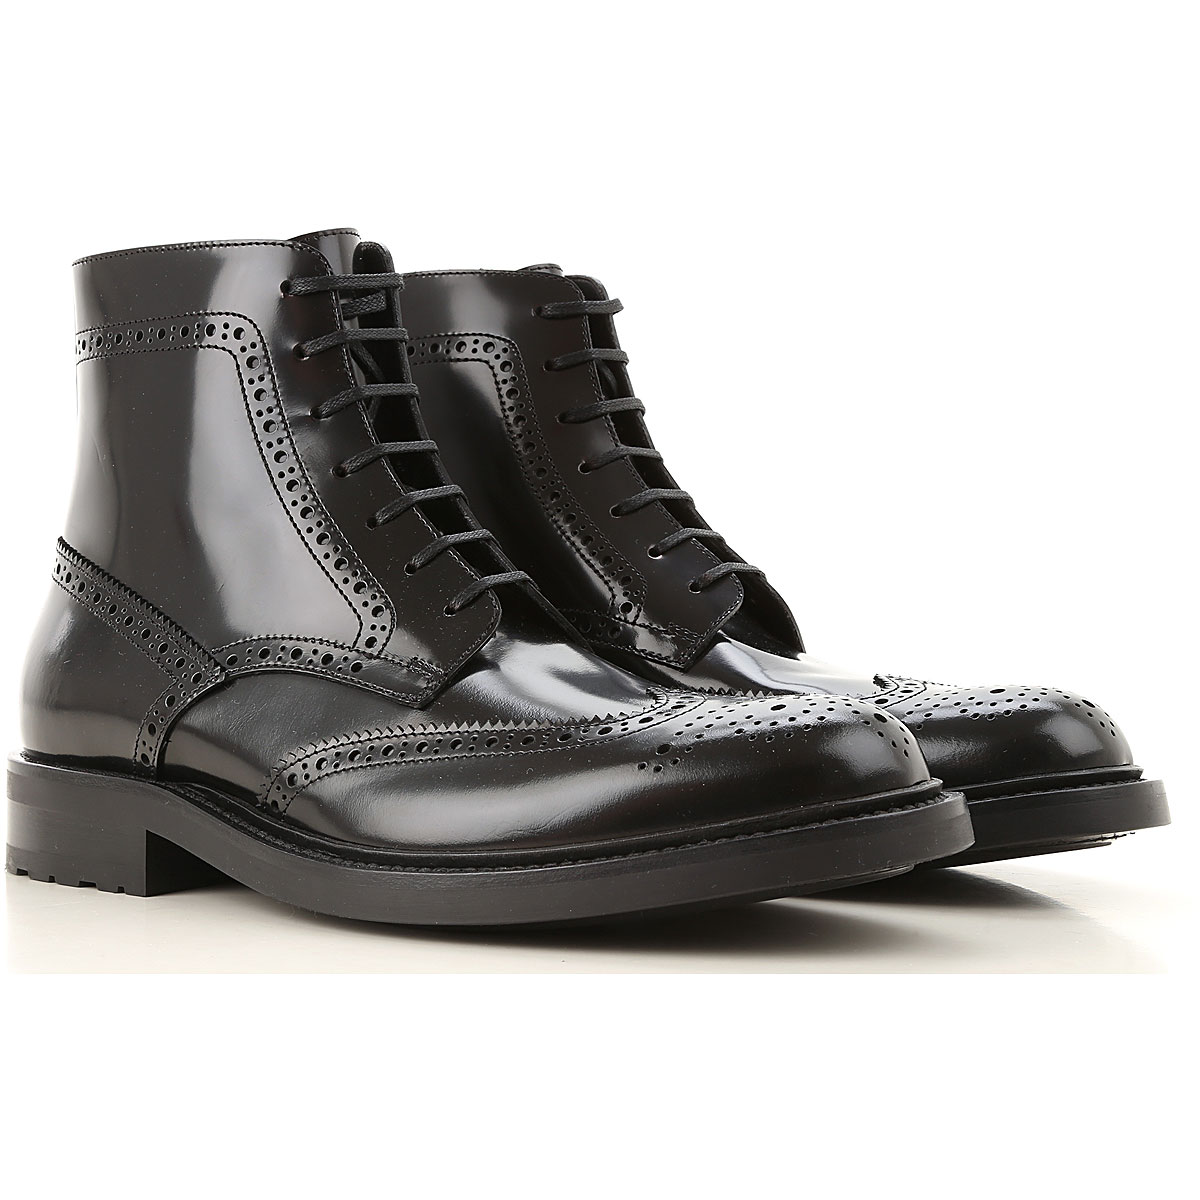 Yves Saint Laurent Boots for Men, Booties On Sale, Black, Leather, 2019, 10 10.25 6.5 7 7.75 8 8.5 9 9.5